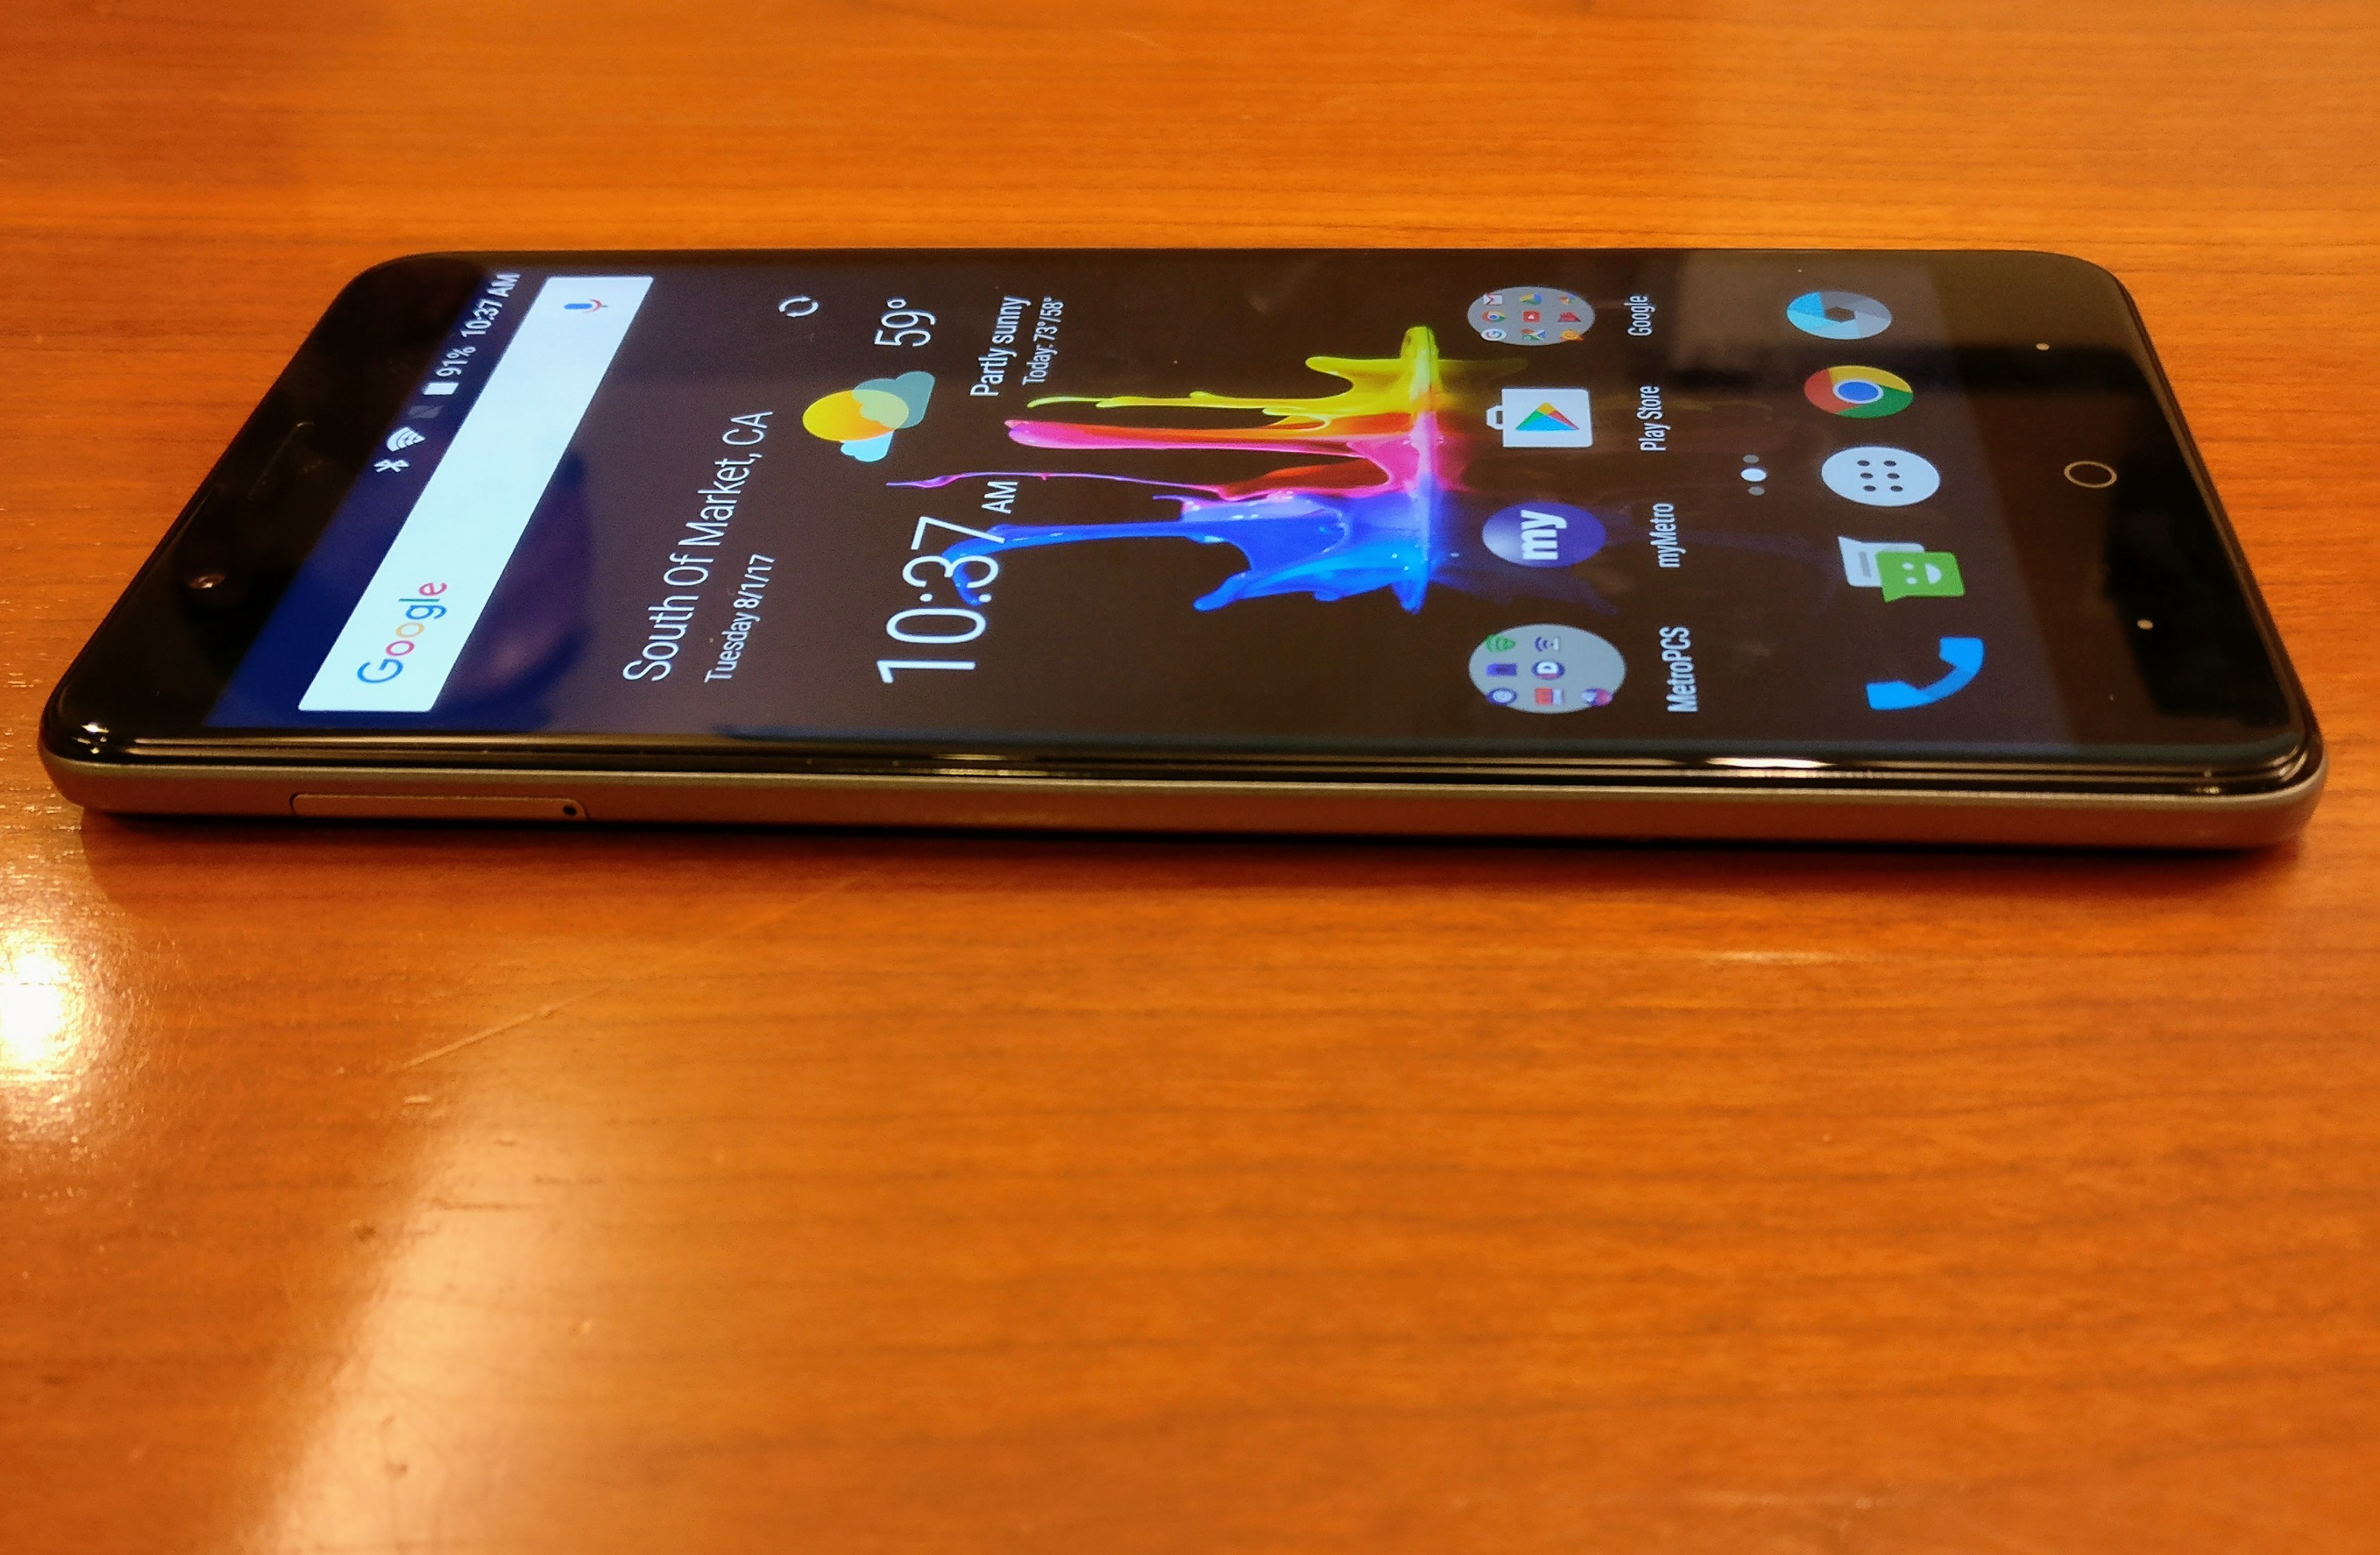 Hands On With A Potentially Game Changing Budget Phone